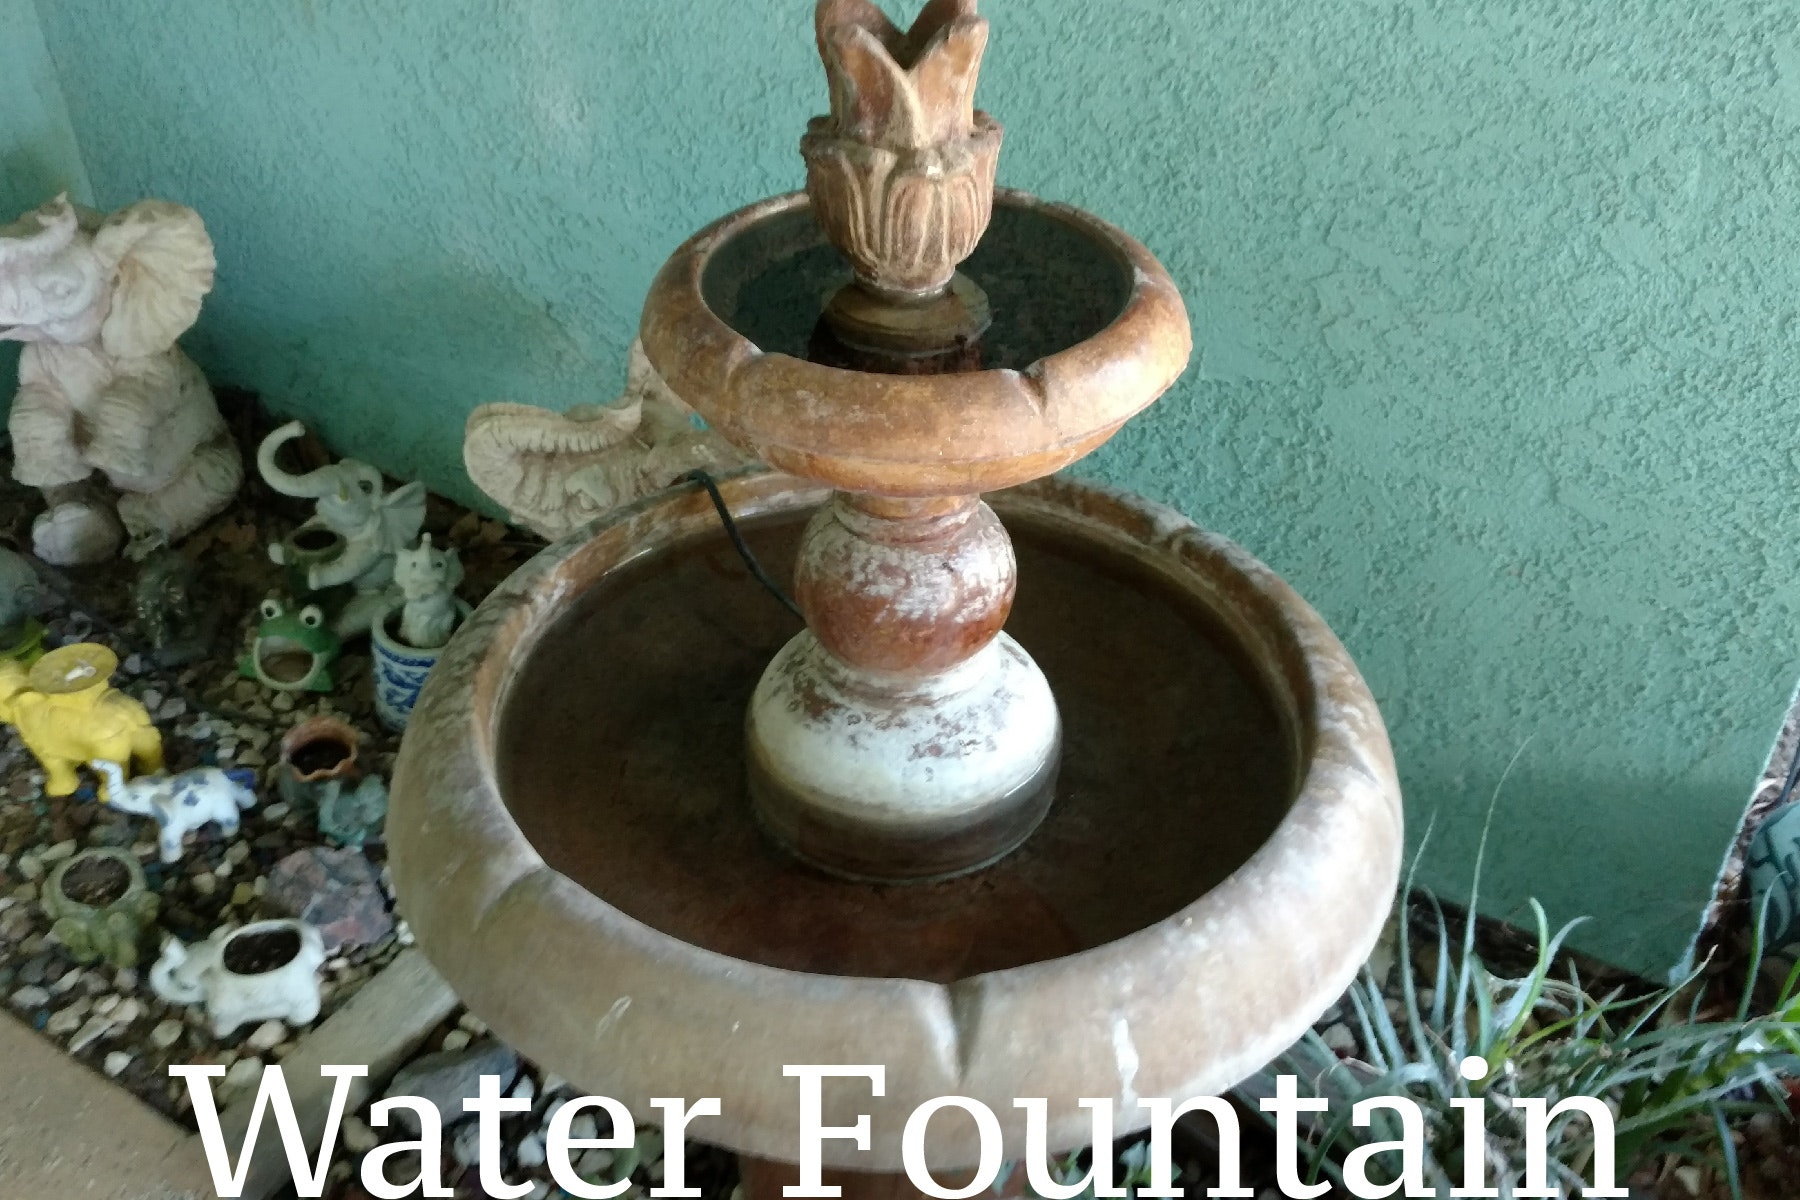 May contain: water and fountain